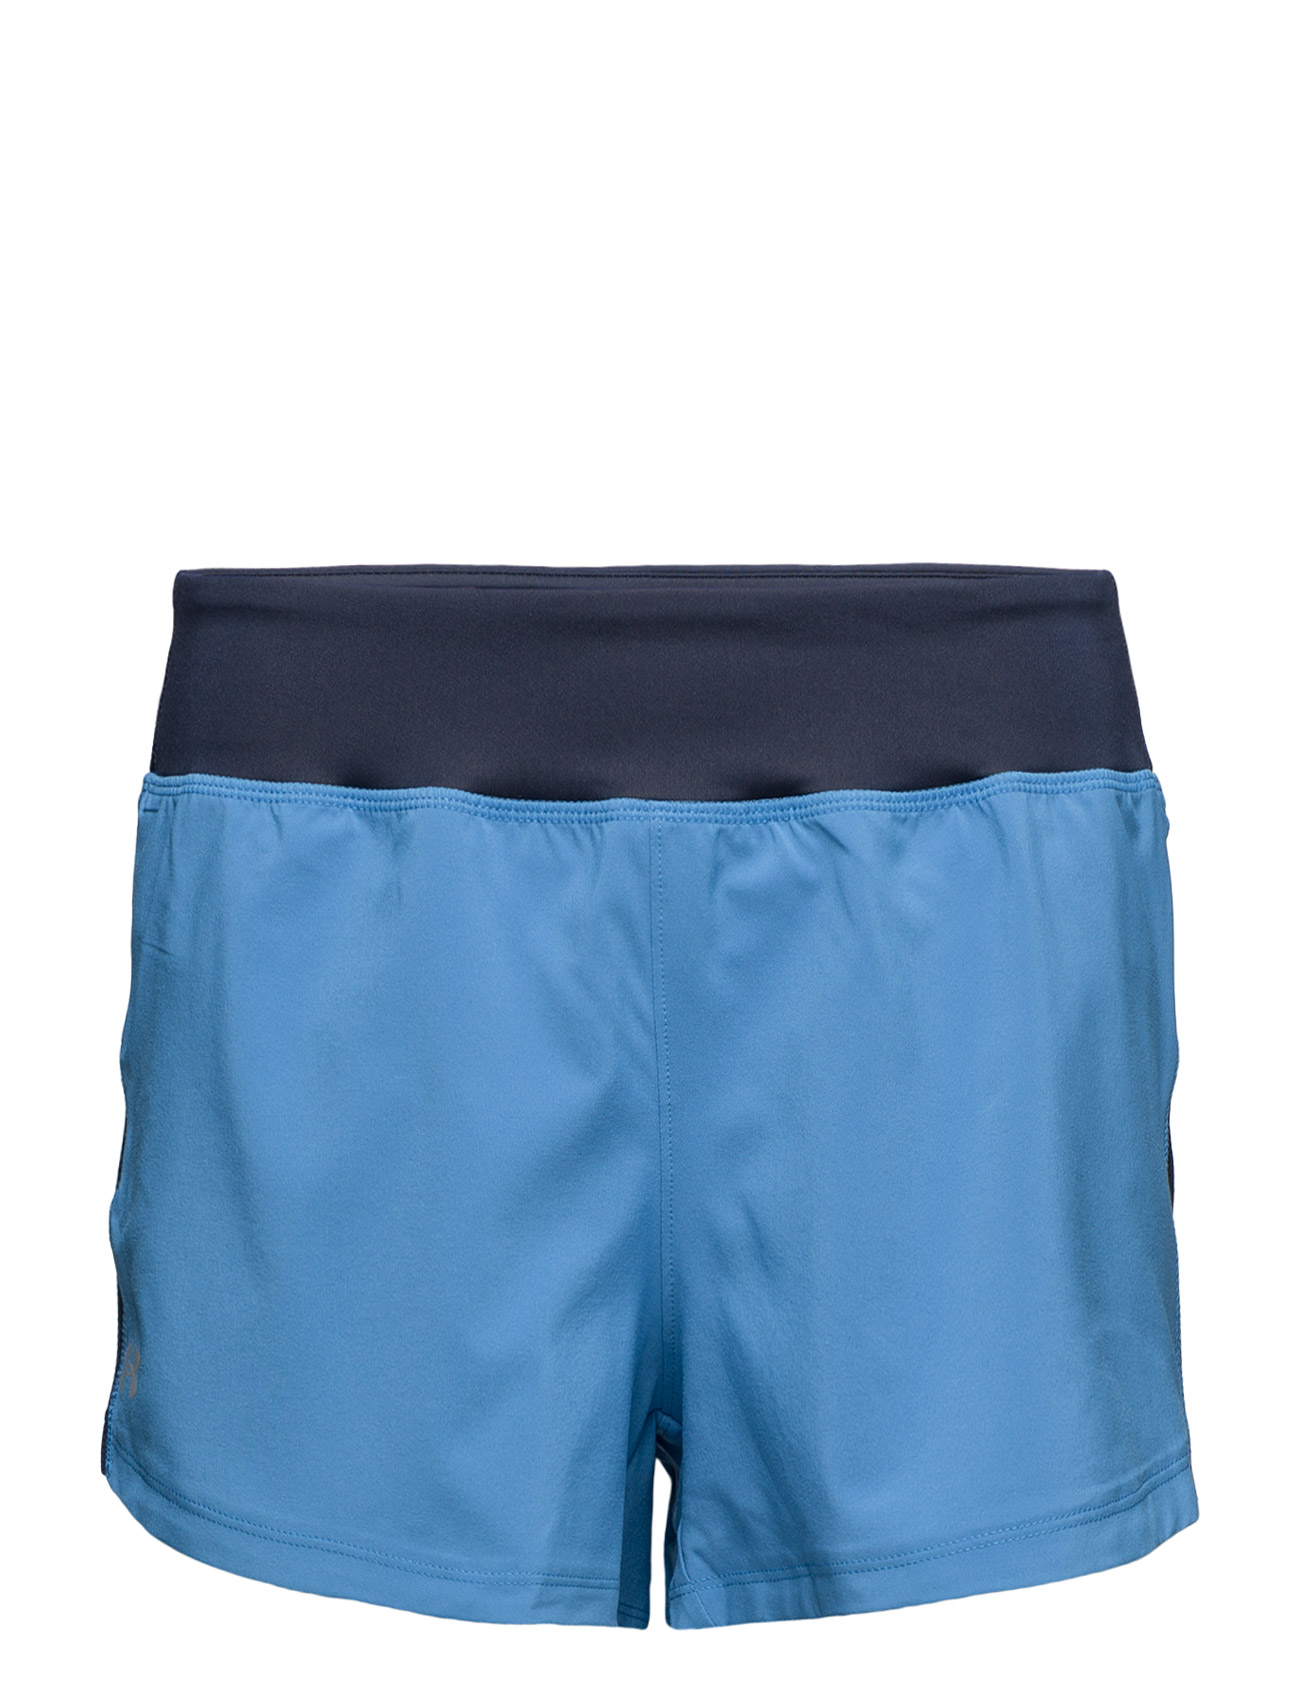 Stretch Woven Short Under Armour Træningsshorts til Damer i